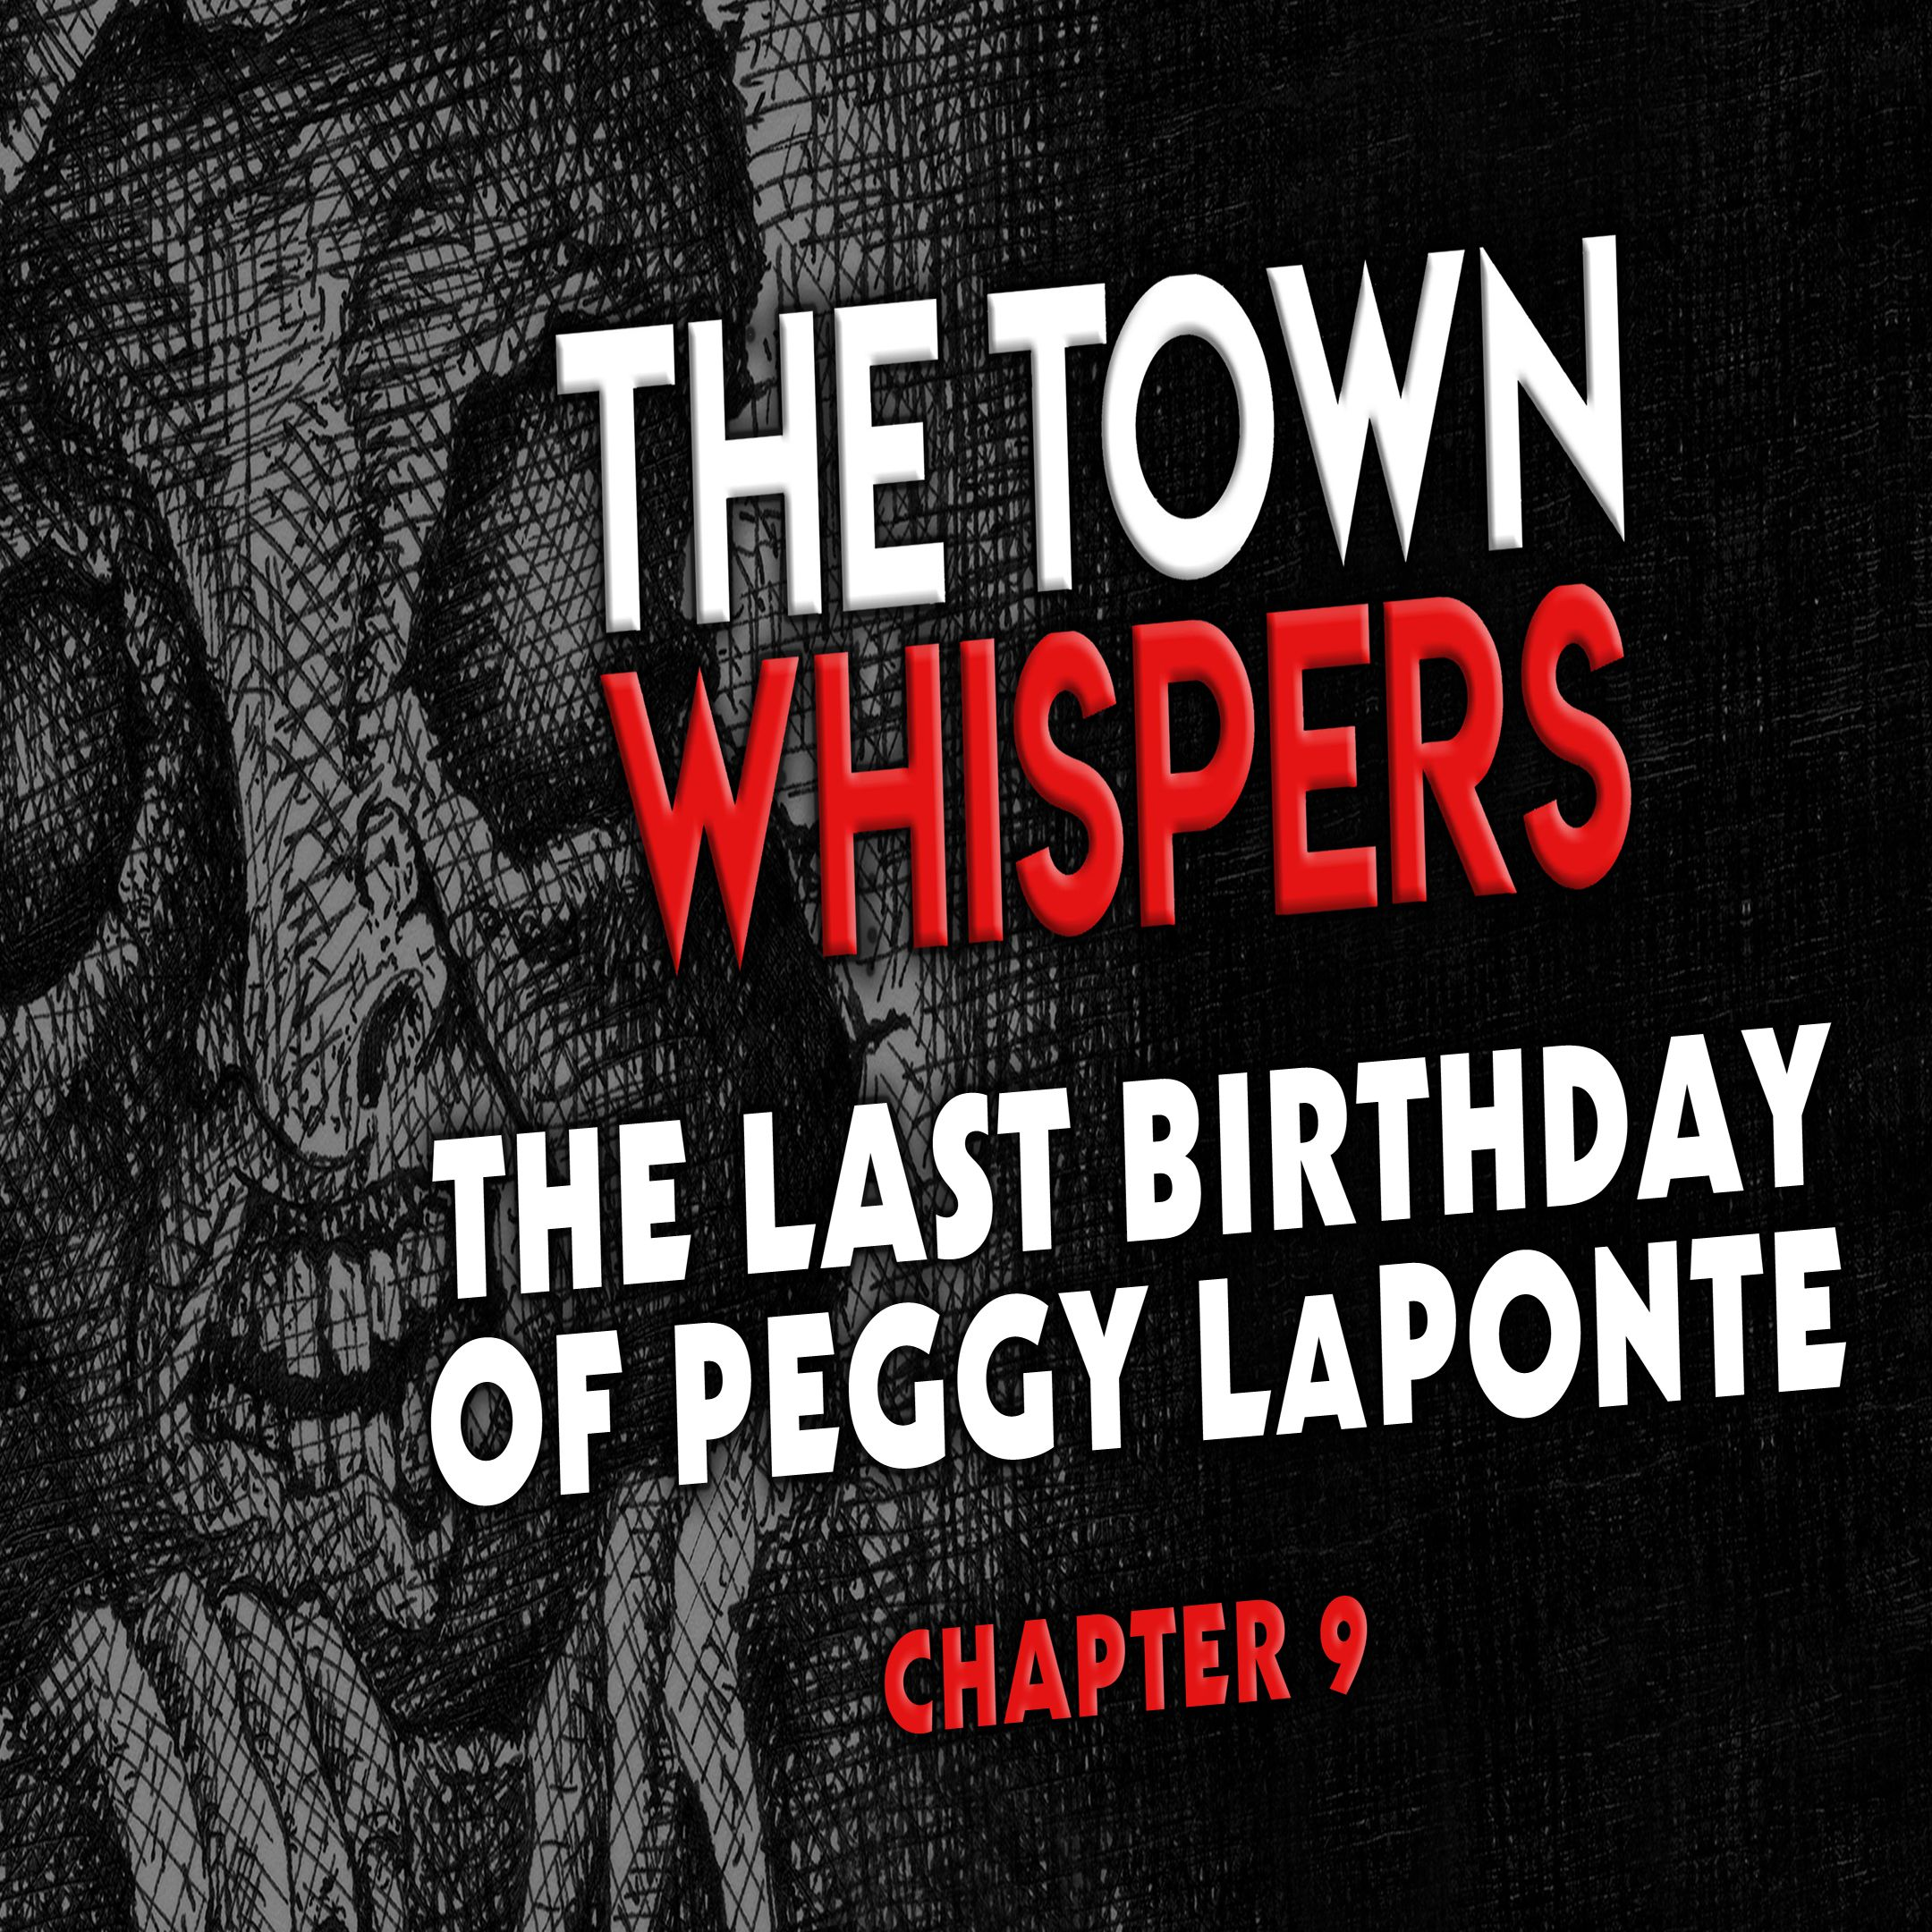 Chapter 9: The Last Birthday of Peggy LaPonte